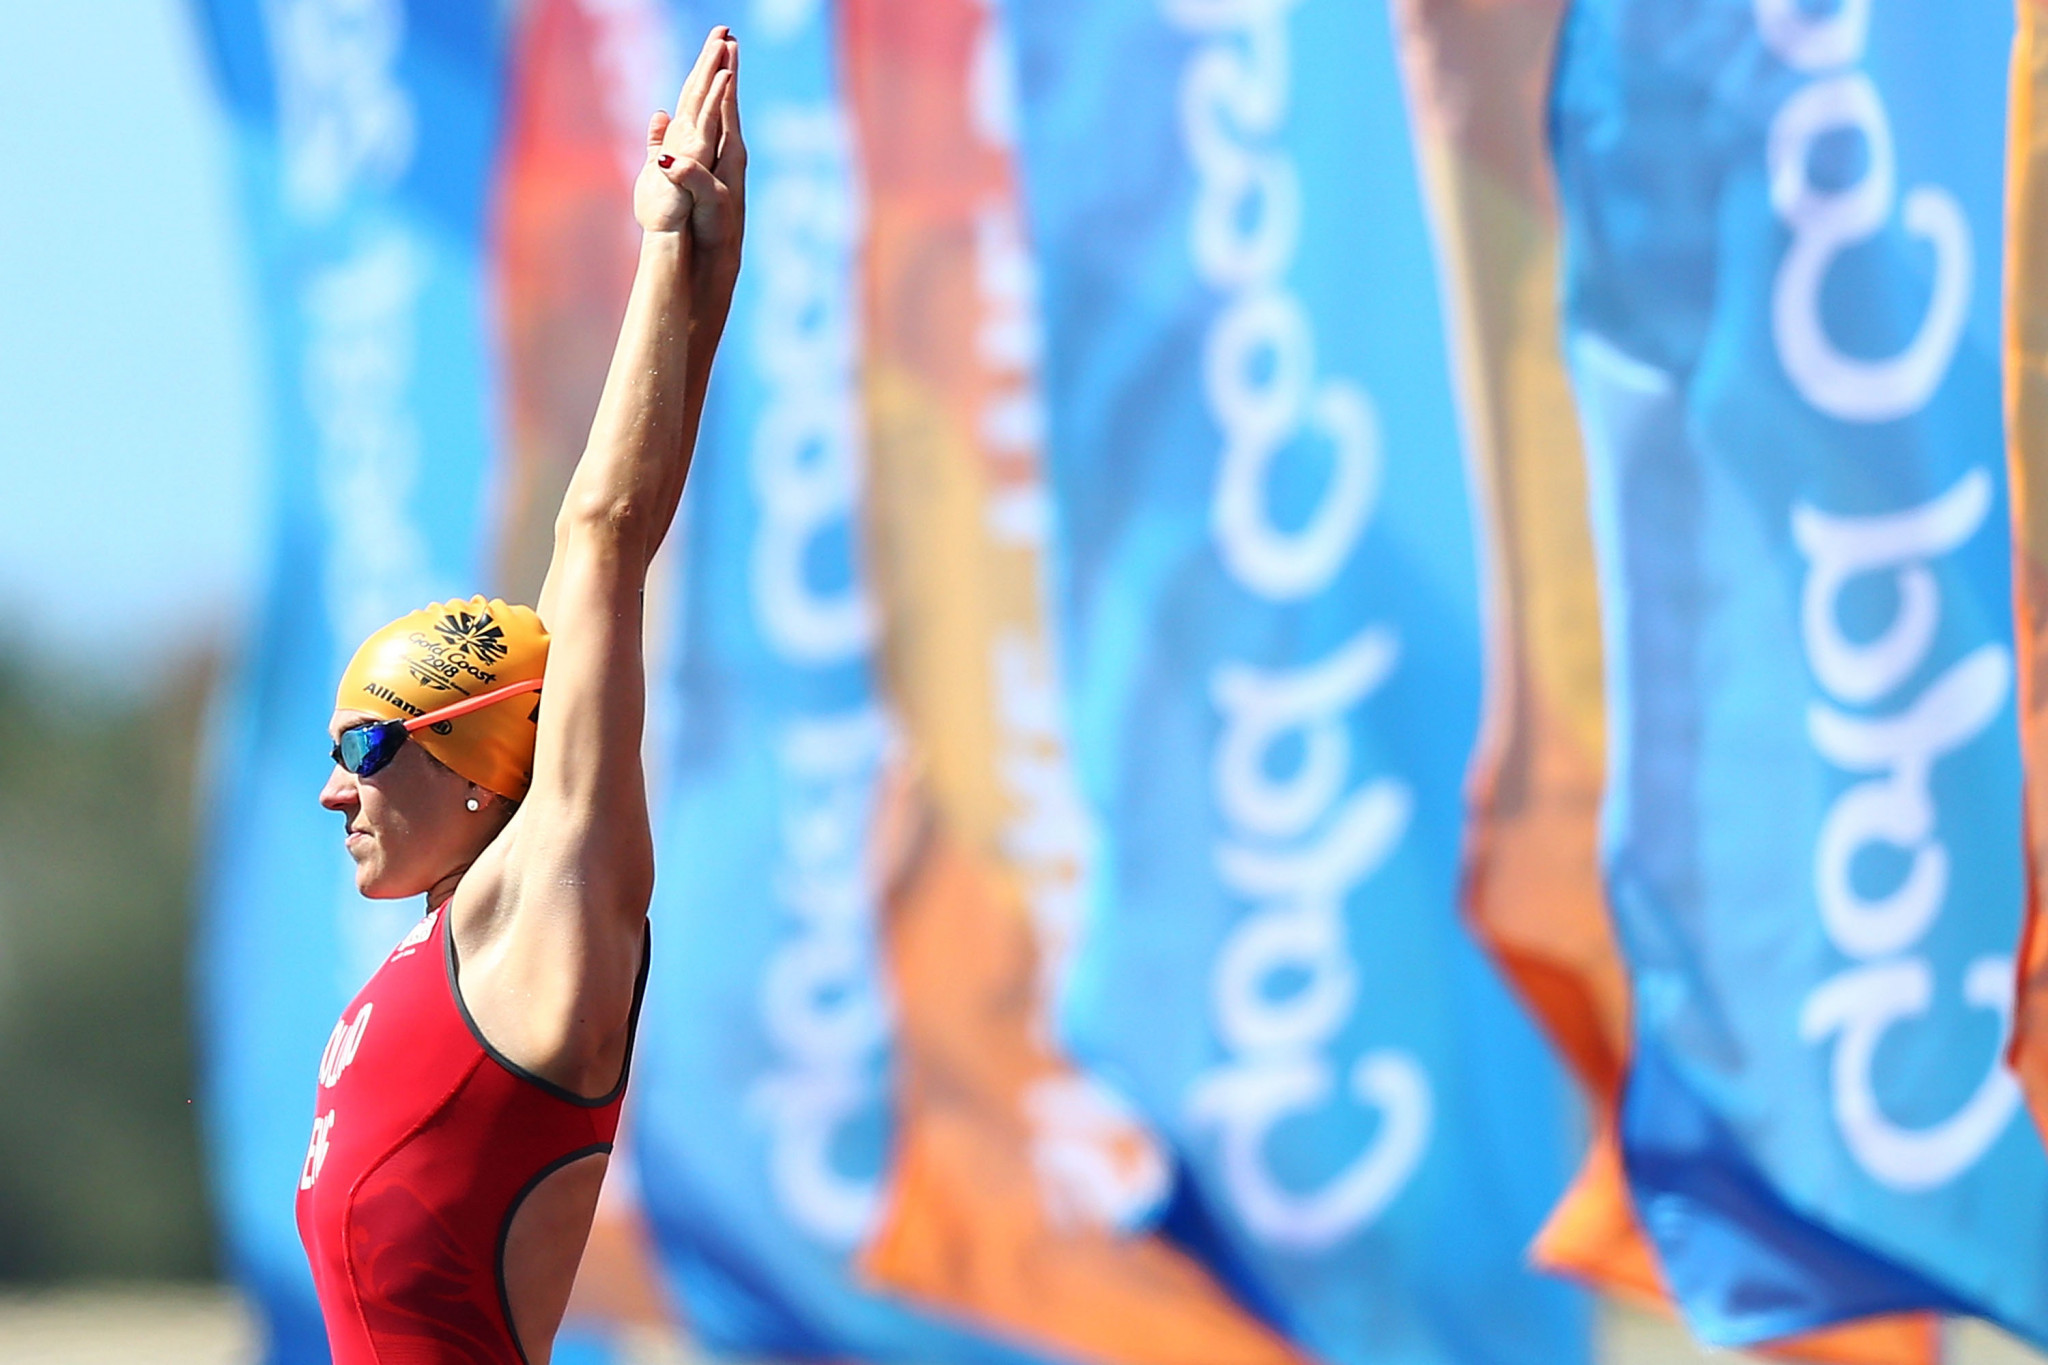 Places in grand final up for grabs at season's penultimate World Triathlon Series in Montreal